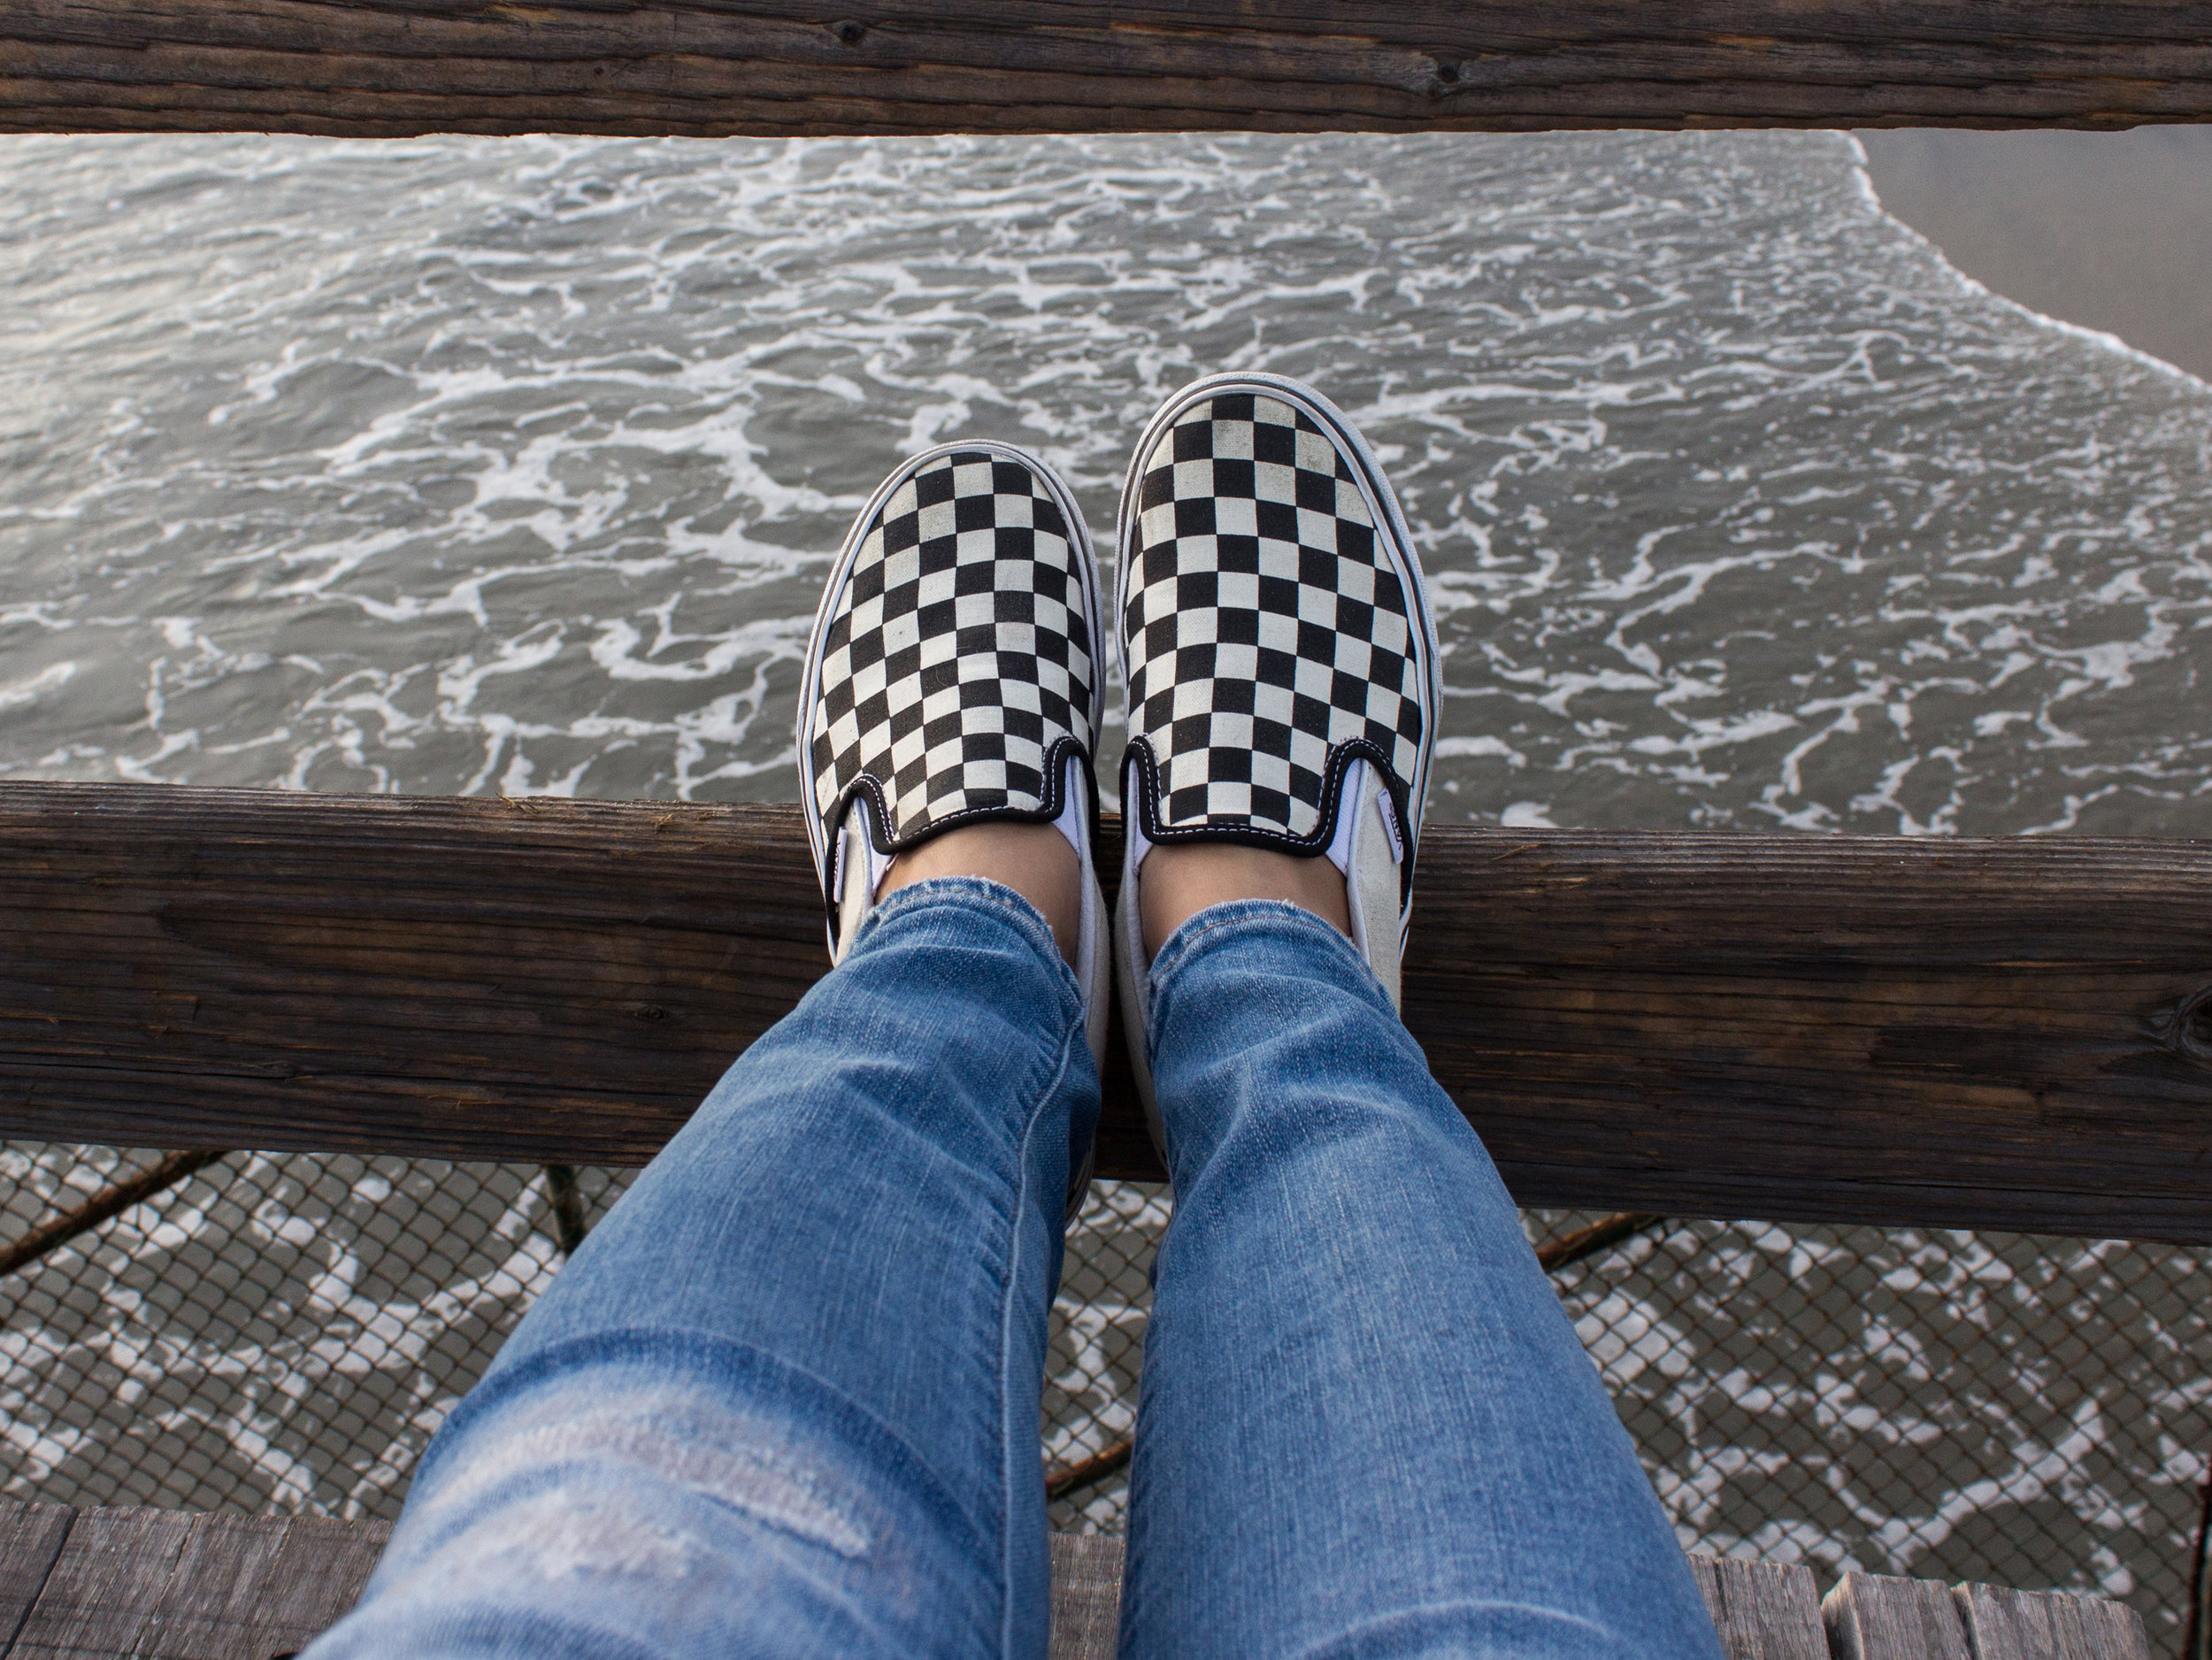 Vans Classic Checkerboard Slip On in Black White